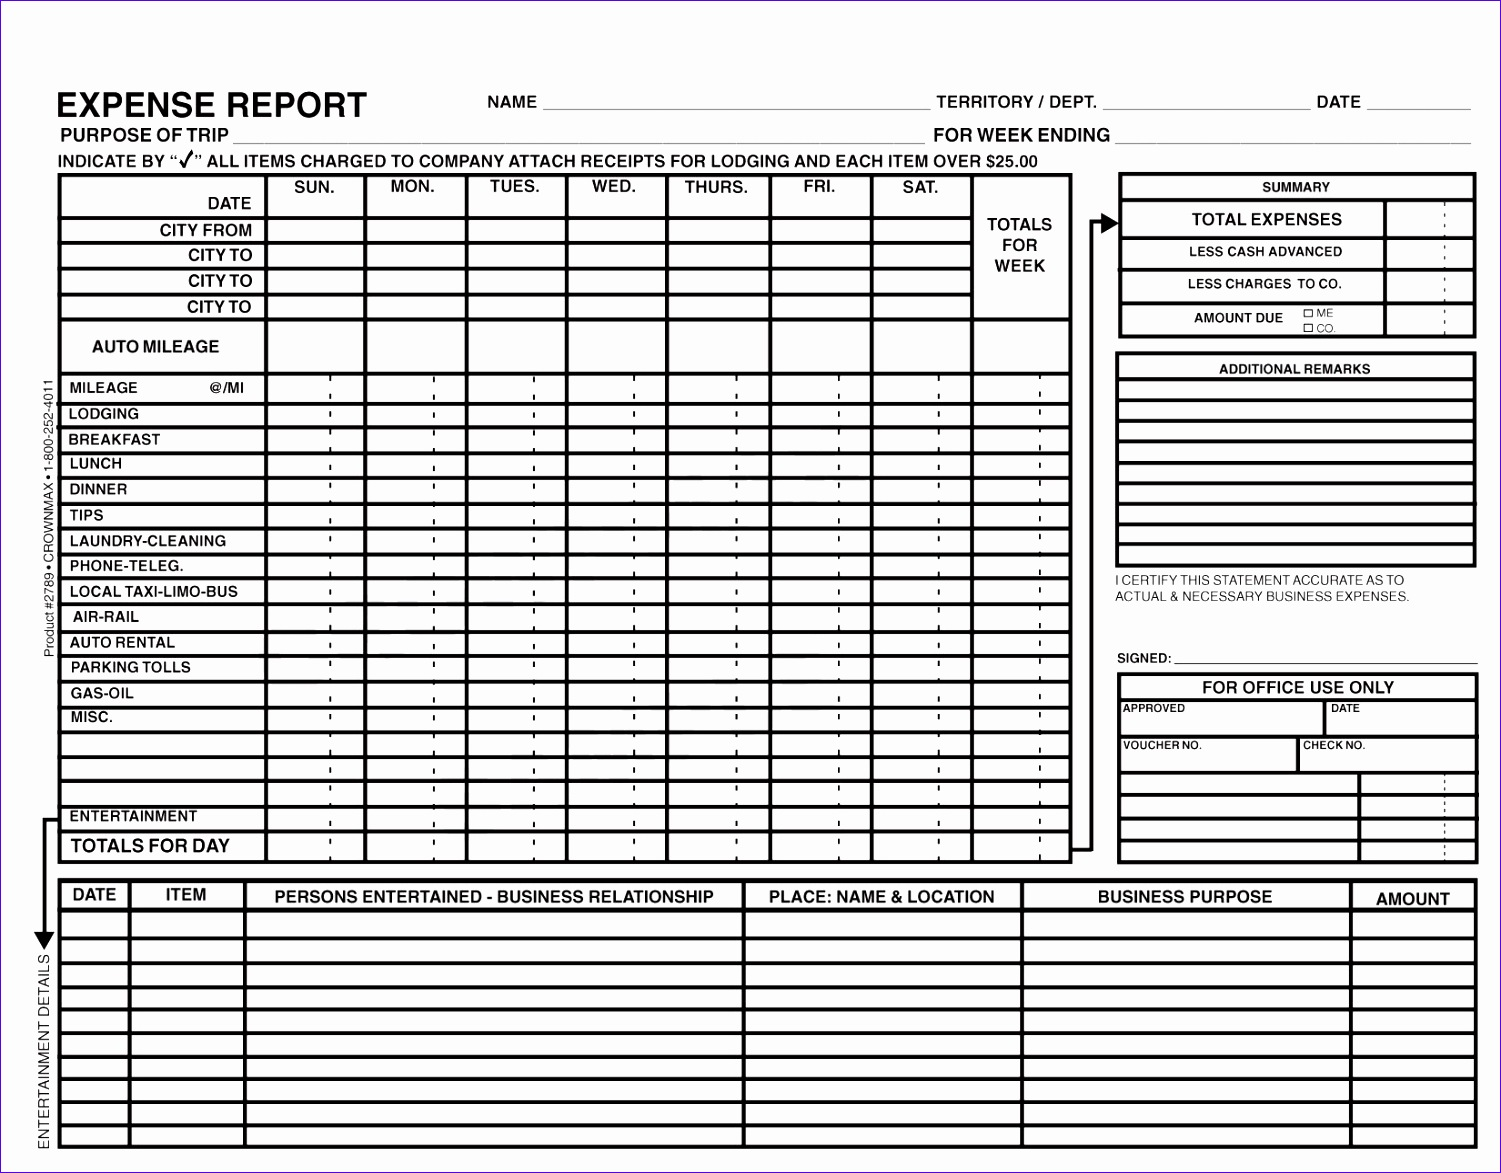 Travel Expense Report with Mileage Log Gbjha Fresh Travel Expense Report forms Selimtd